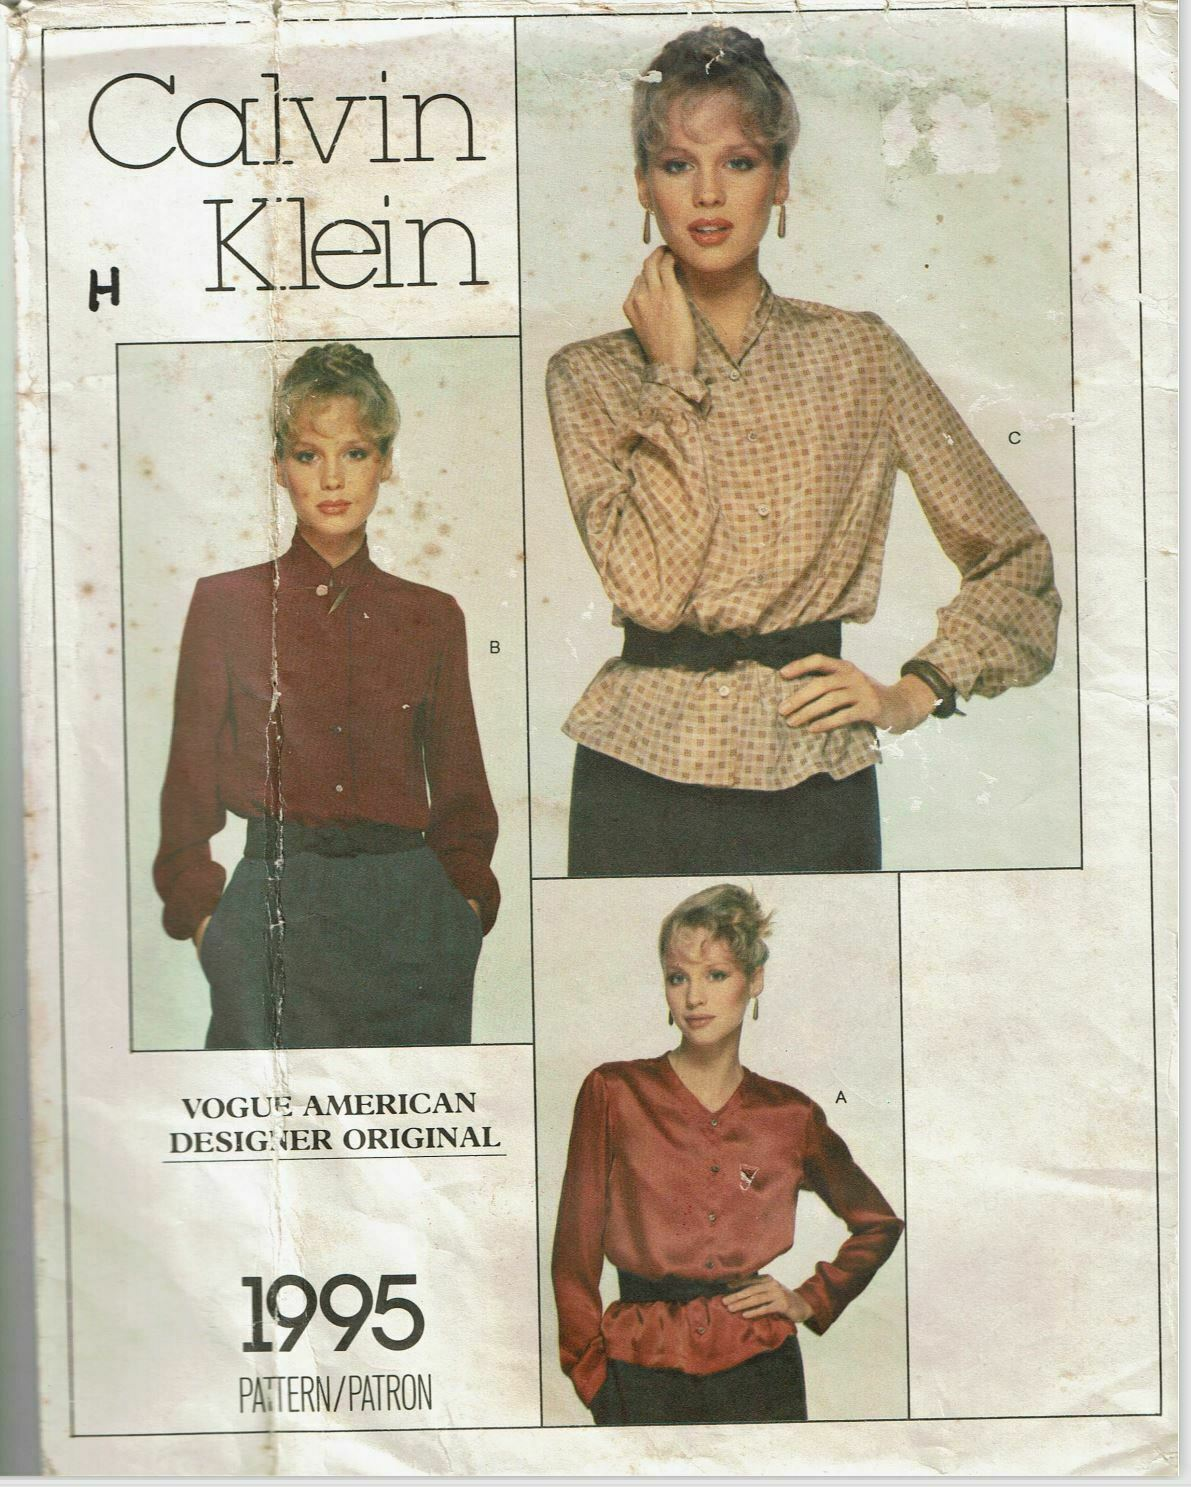 Primary image for Calvin Klein Vogue Sewing Pattern 1995 Misses Blouse Size 10 VTG 70s